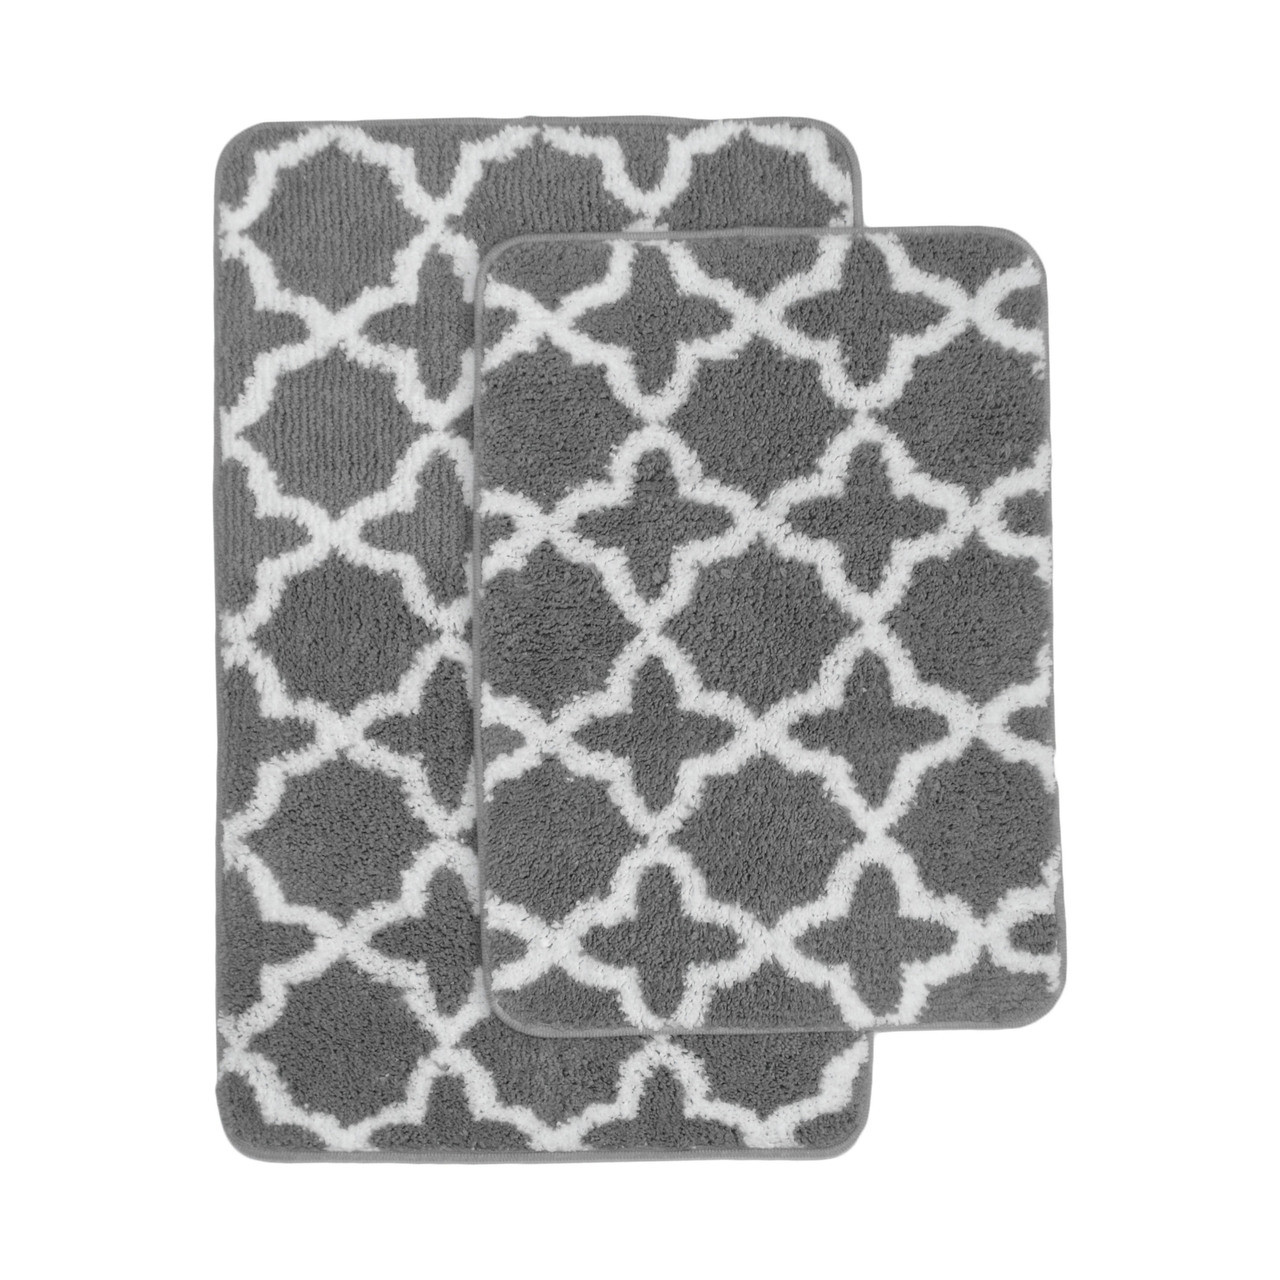 charcoal gray and white plush moroccan trellis print bath mat area rug set charcoal gray and white non skid backing